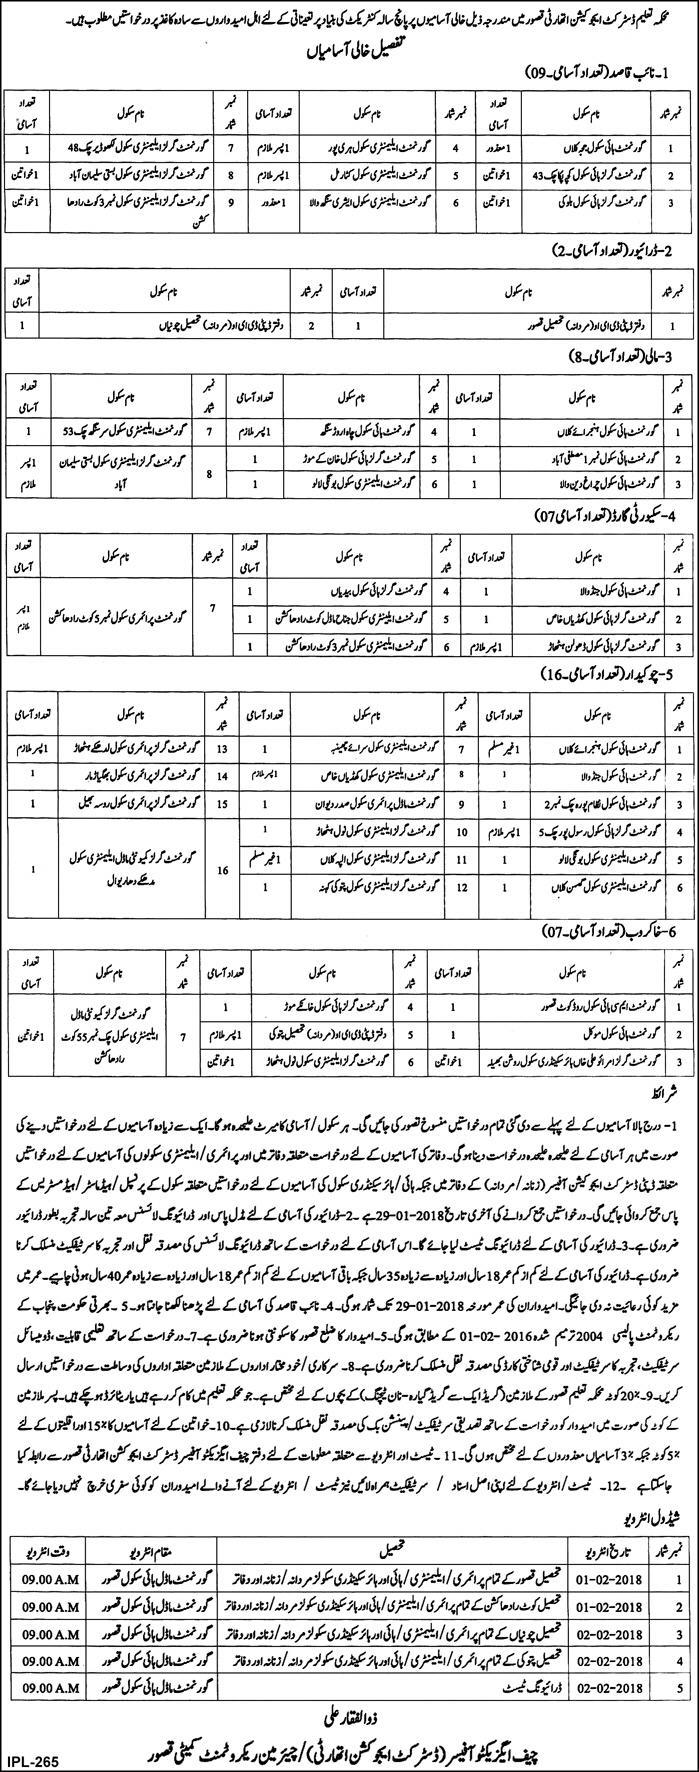 Kasur District Education Authority 49 Jobs, 06 January 2018 Daily Express Newspaper